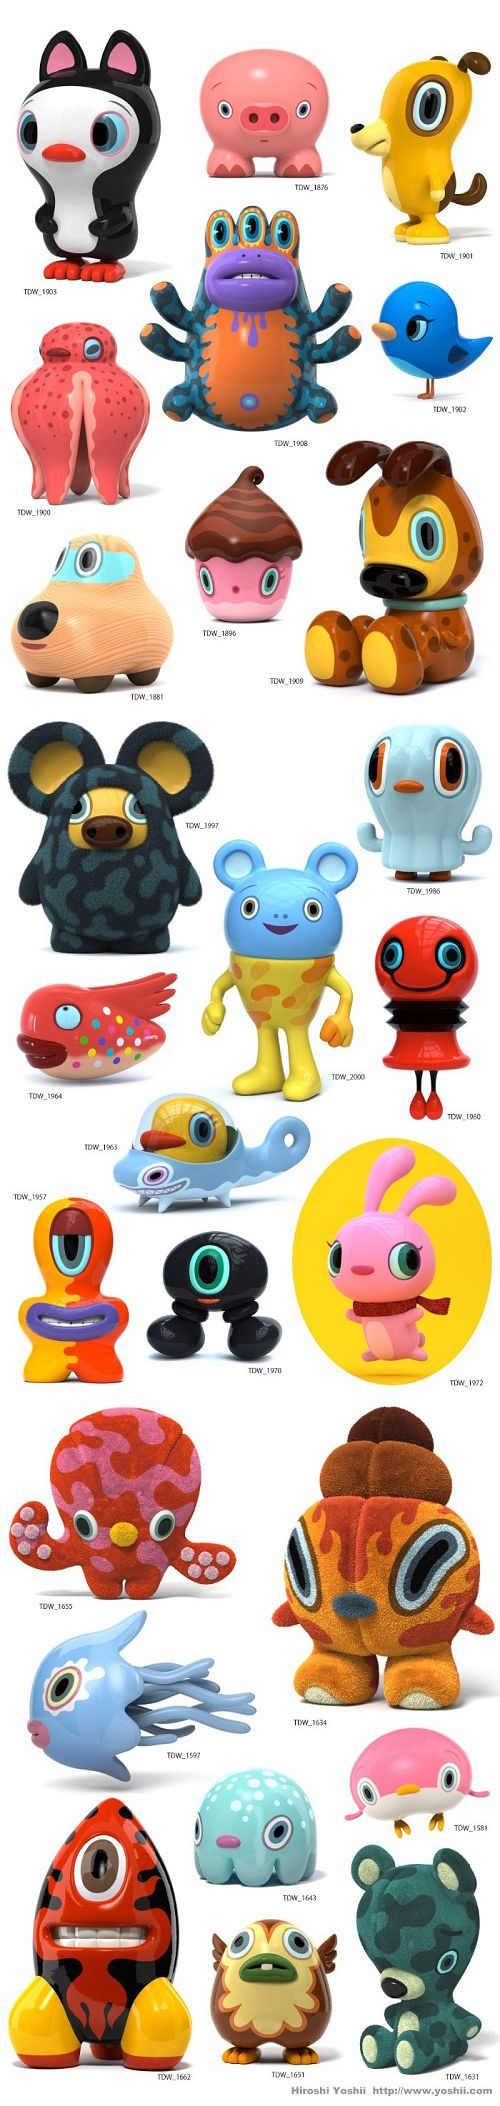 Kawaii toys collection- Hiroshi Yoshii. Need these in my life